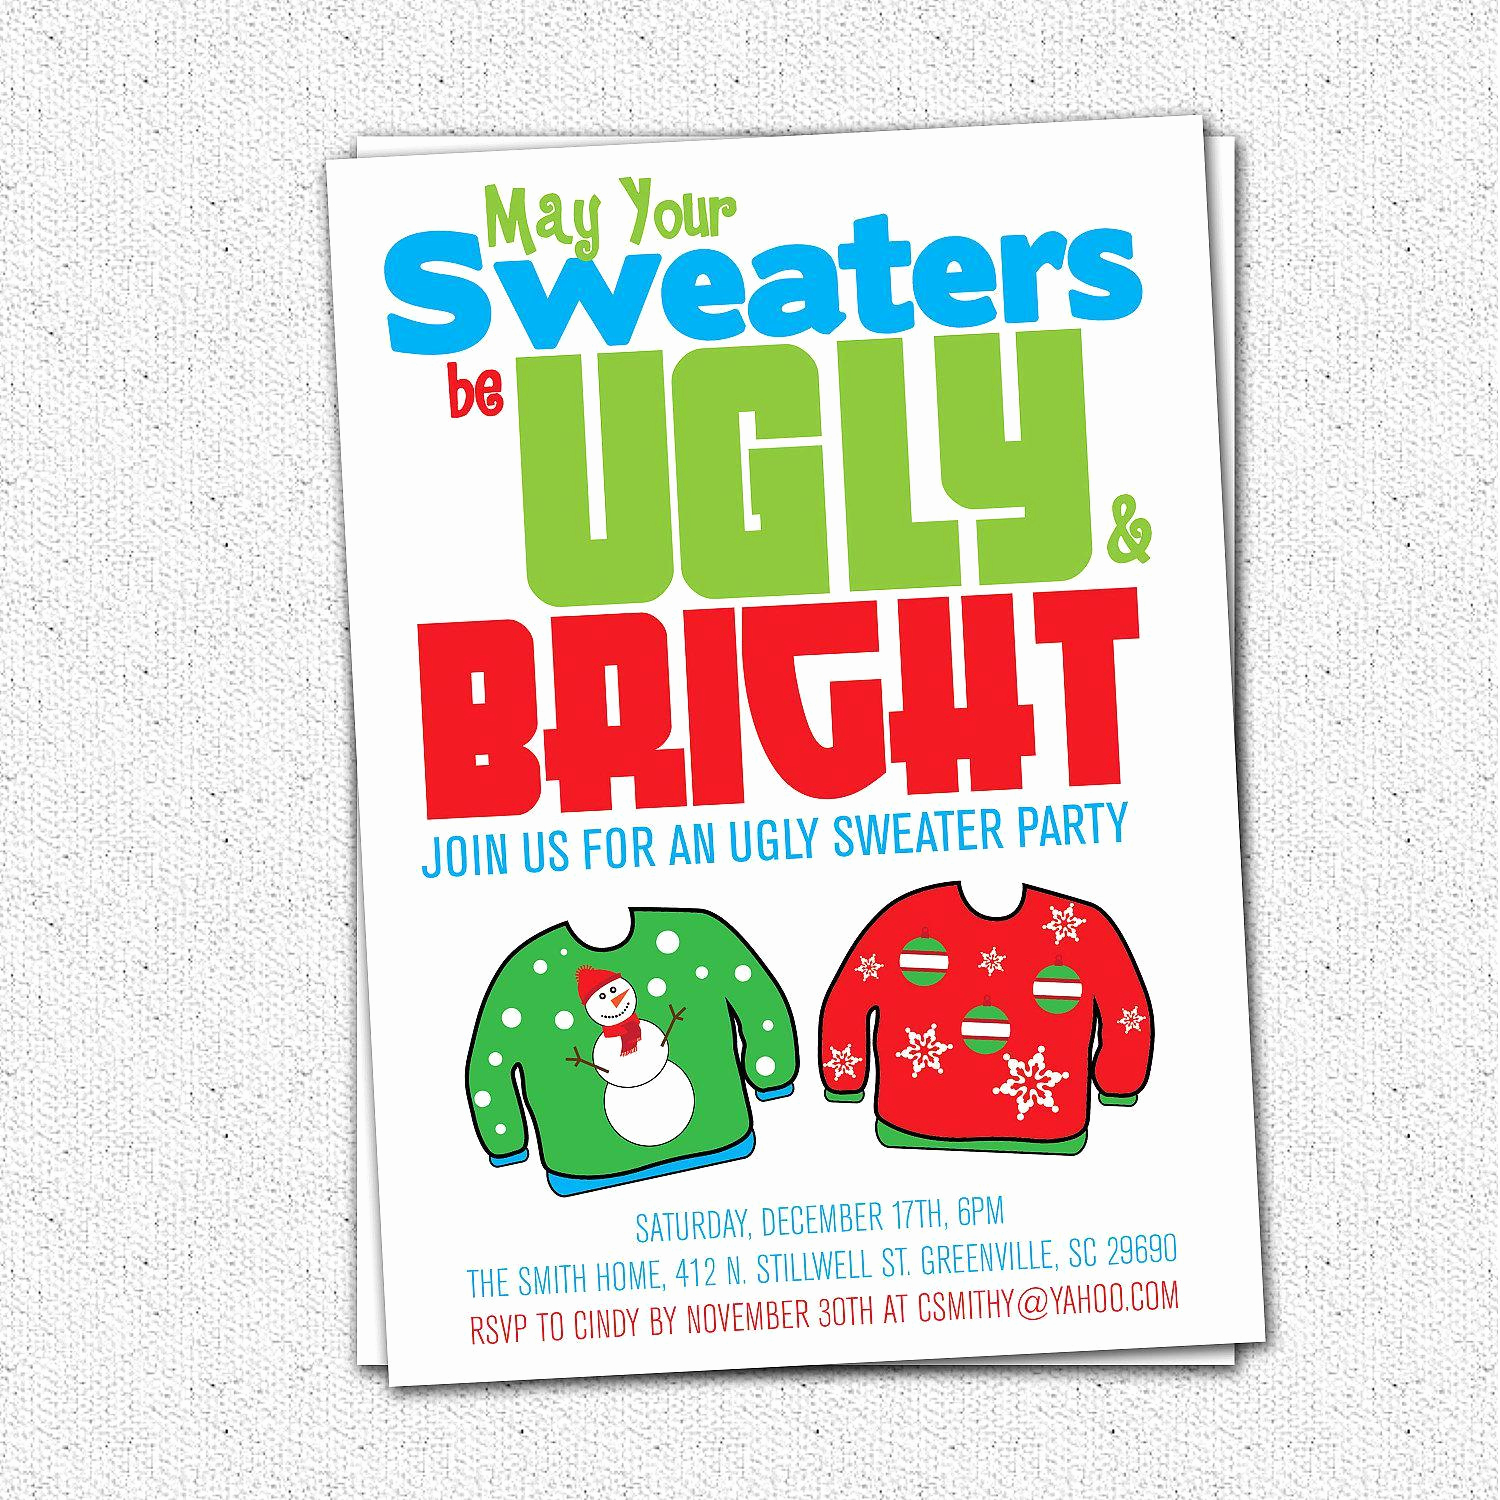 Ugly Sweater Invitation Template Free Luxury Ugly Sweater Invitation Template Free Ugly Sweater Party